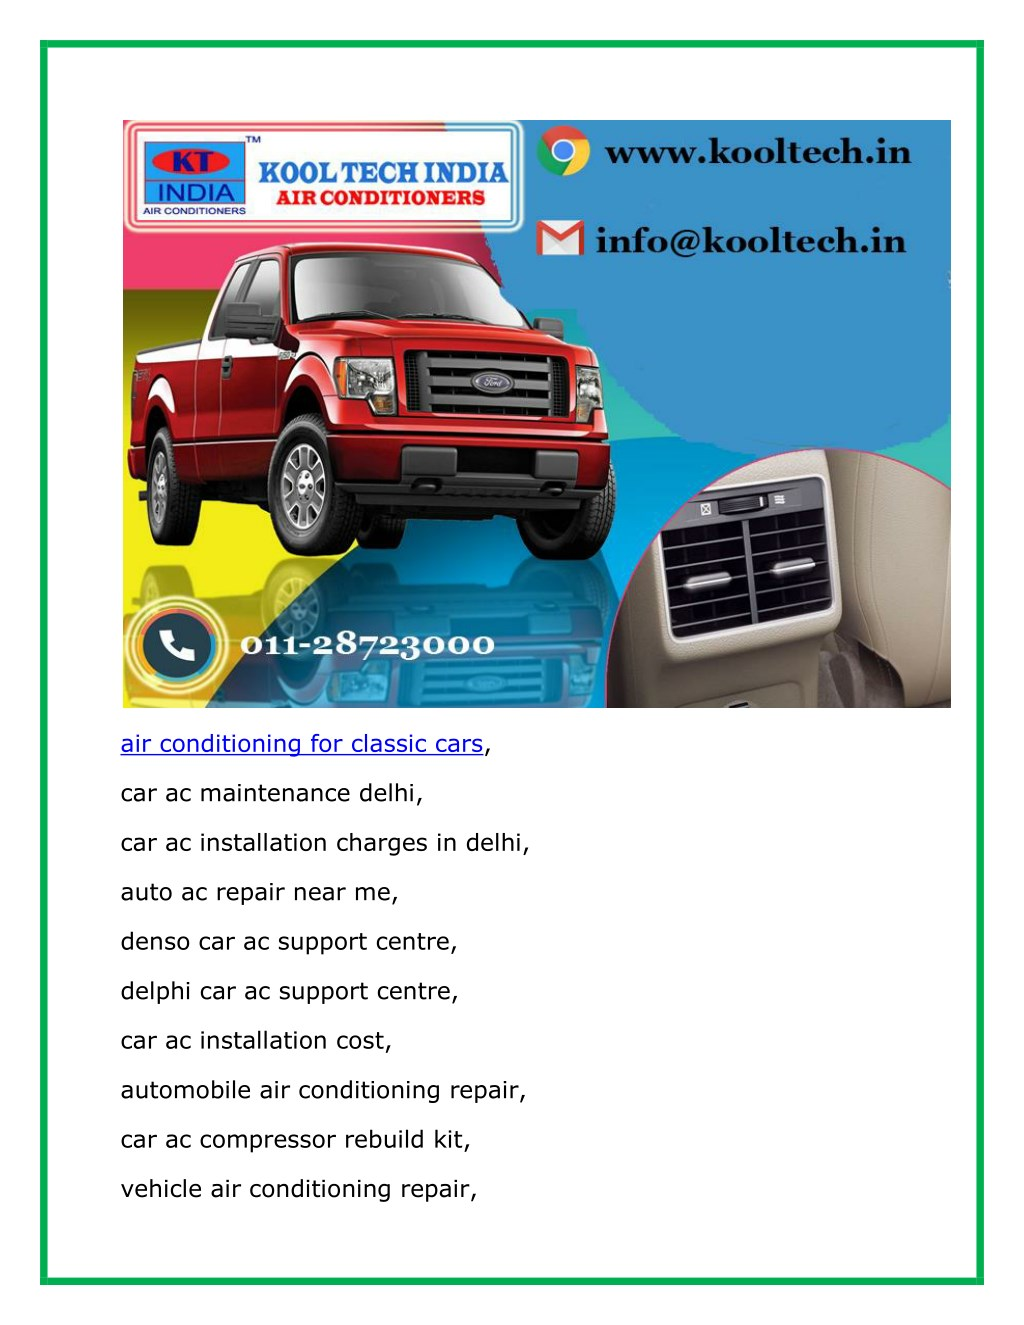 Ppt Auto Ac Repair And Denso Car Ac Support Centre Powerpoint